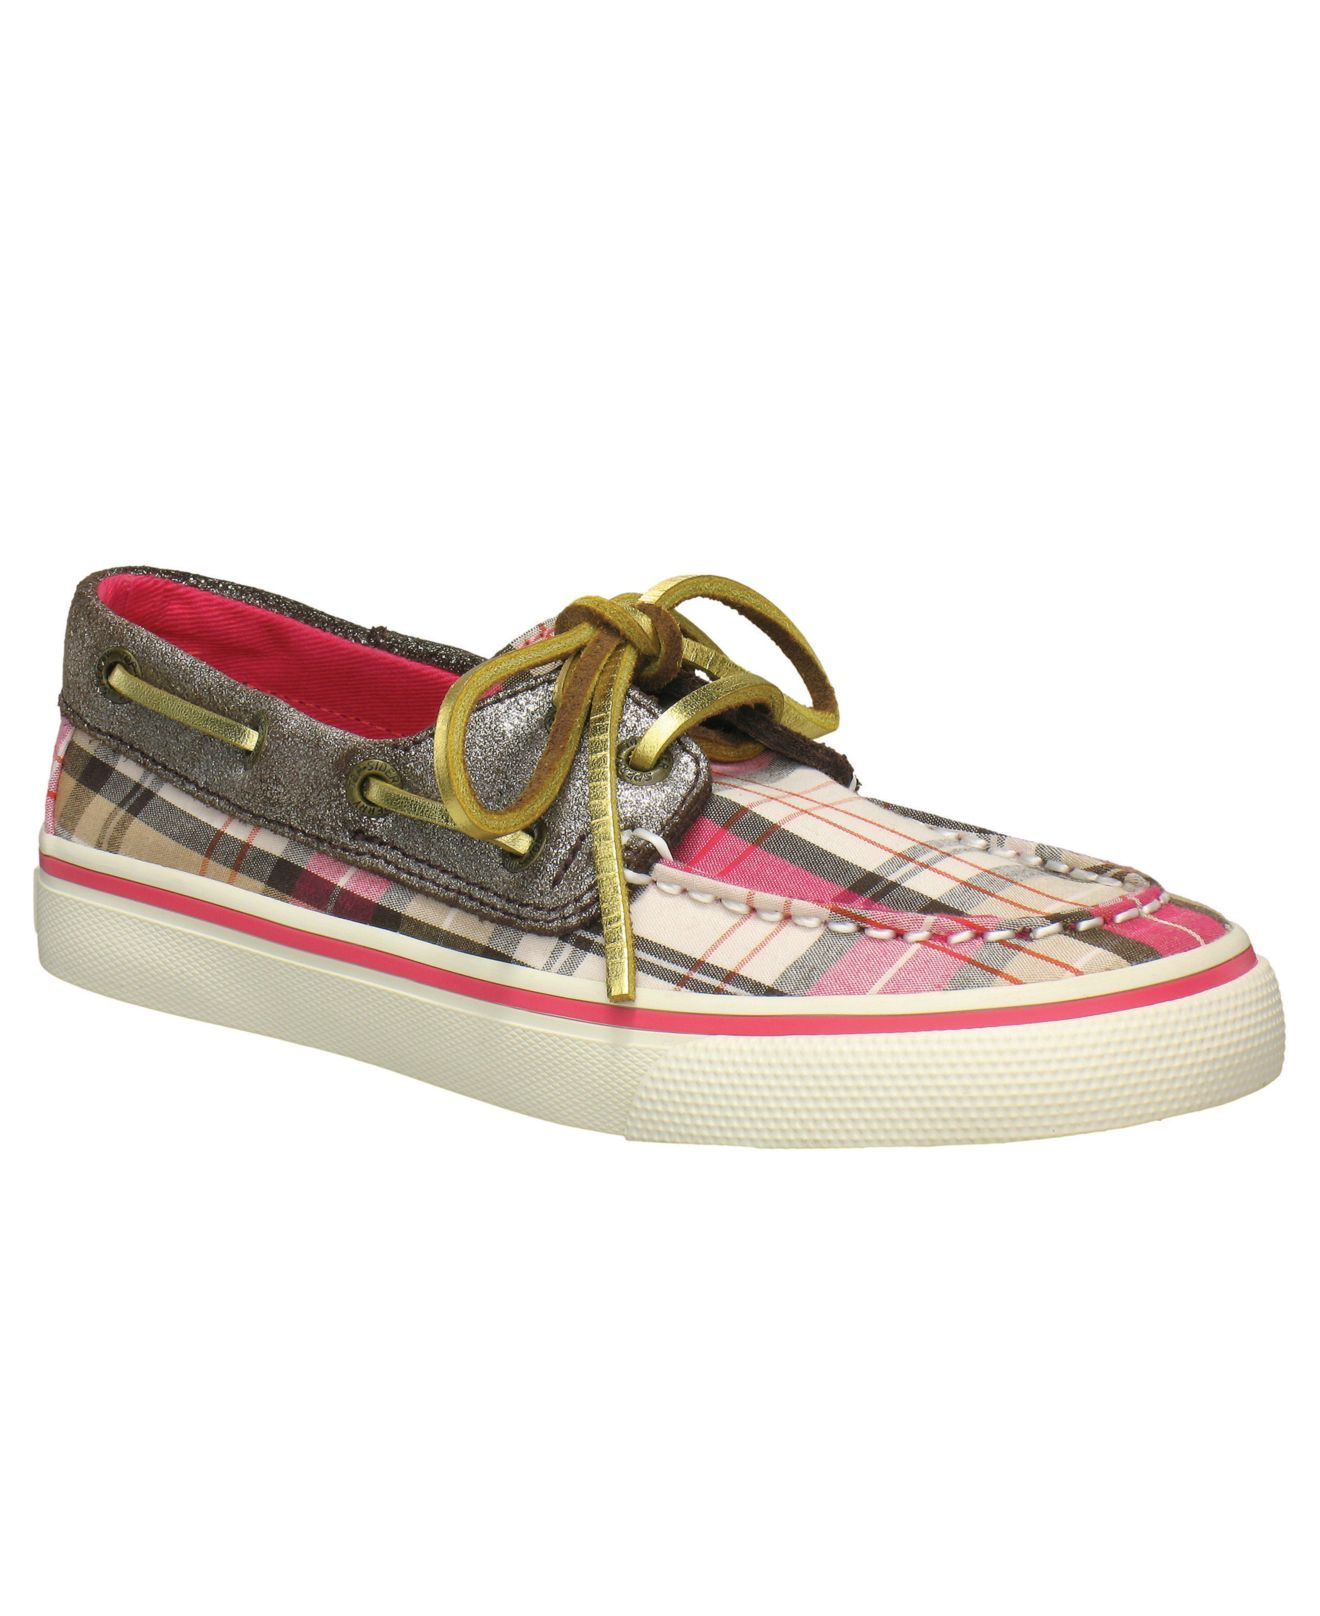 Sperry Kids Shoes Little Girls Sparkle Bahama Boat Shoes Kids